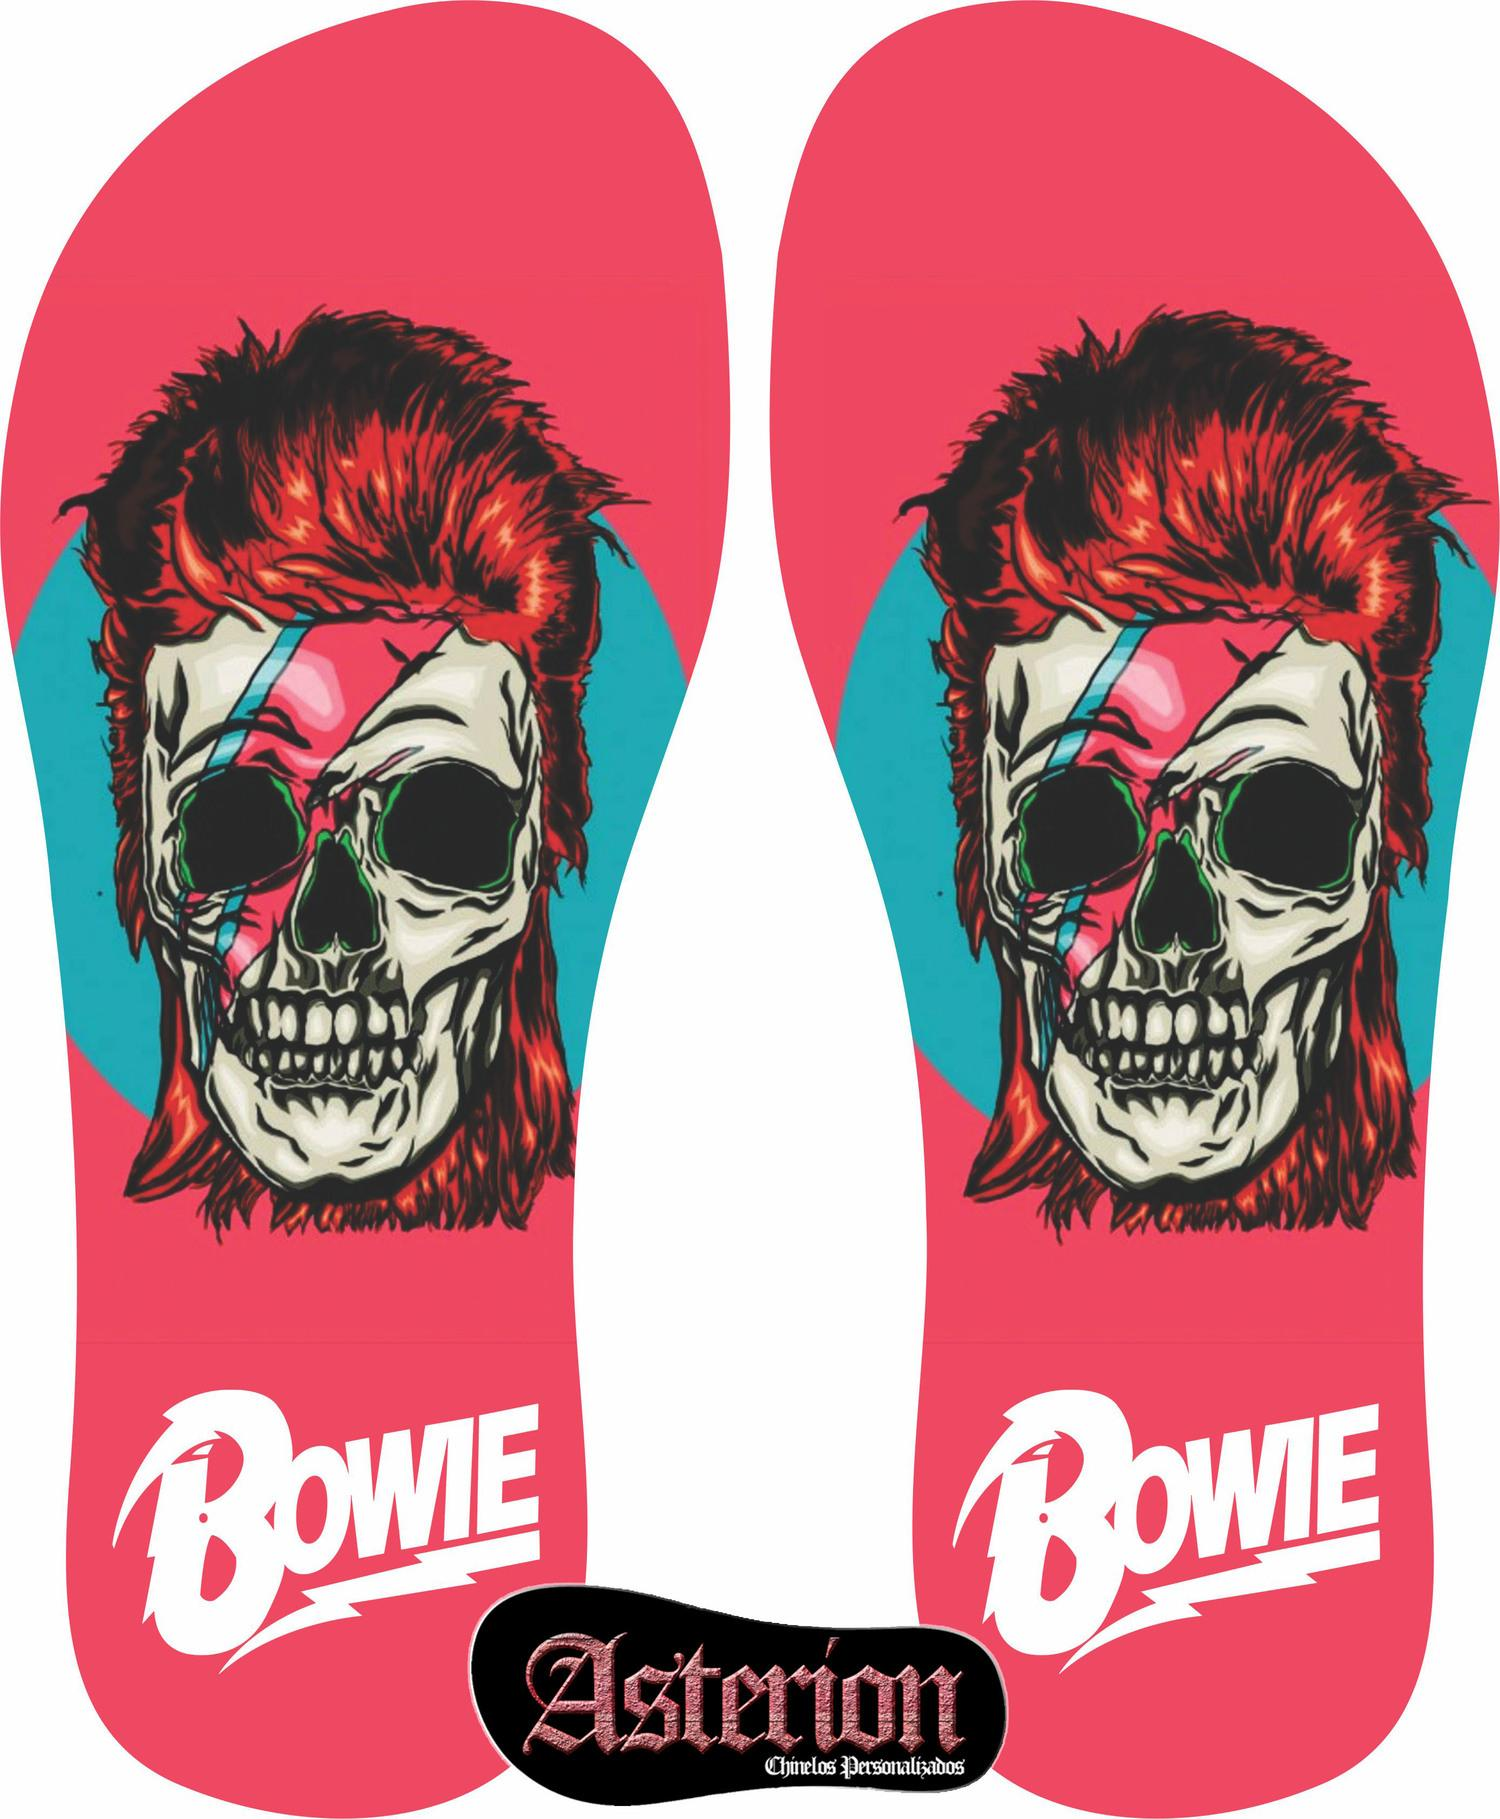 Chinelo David Bowie – Asterion Chinelos Personalizados